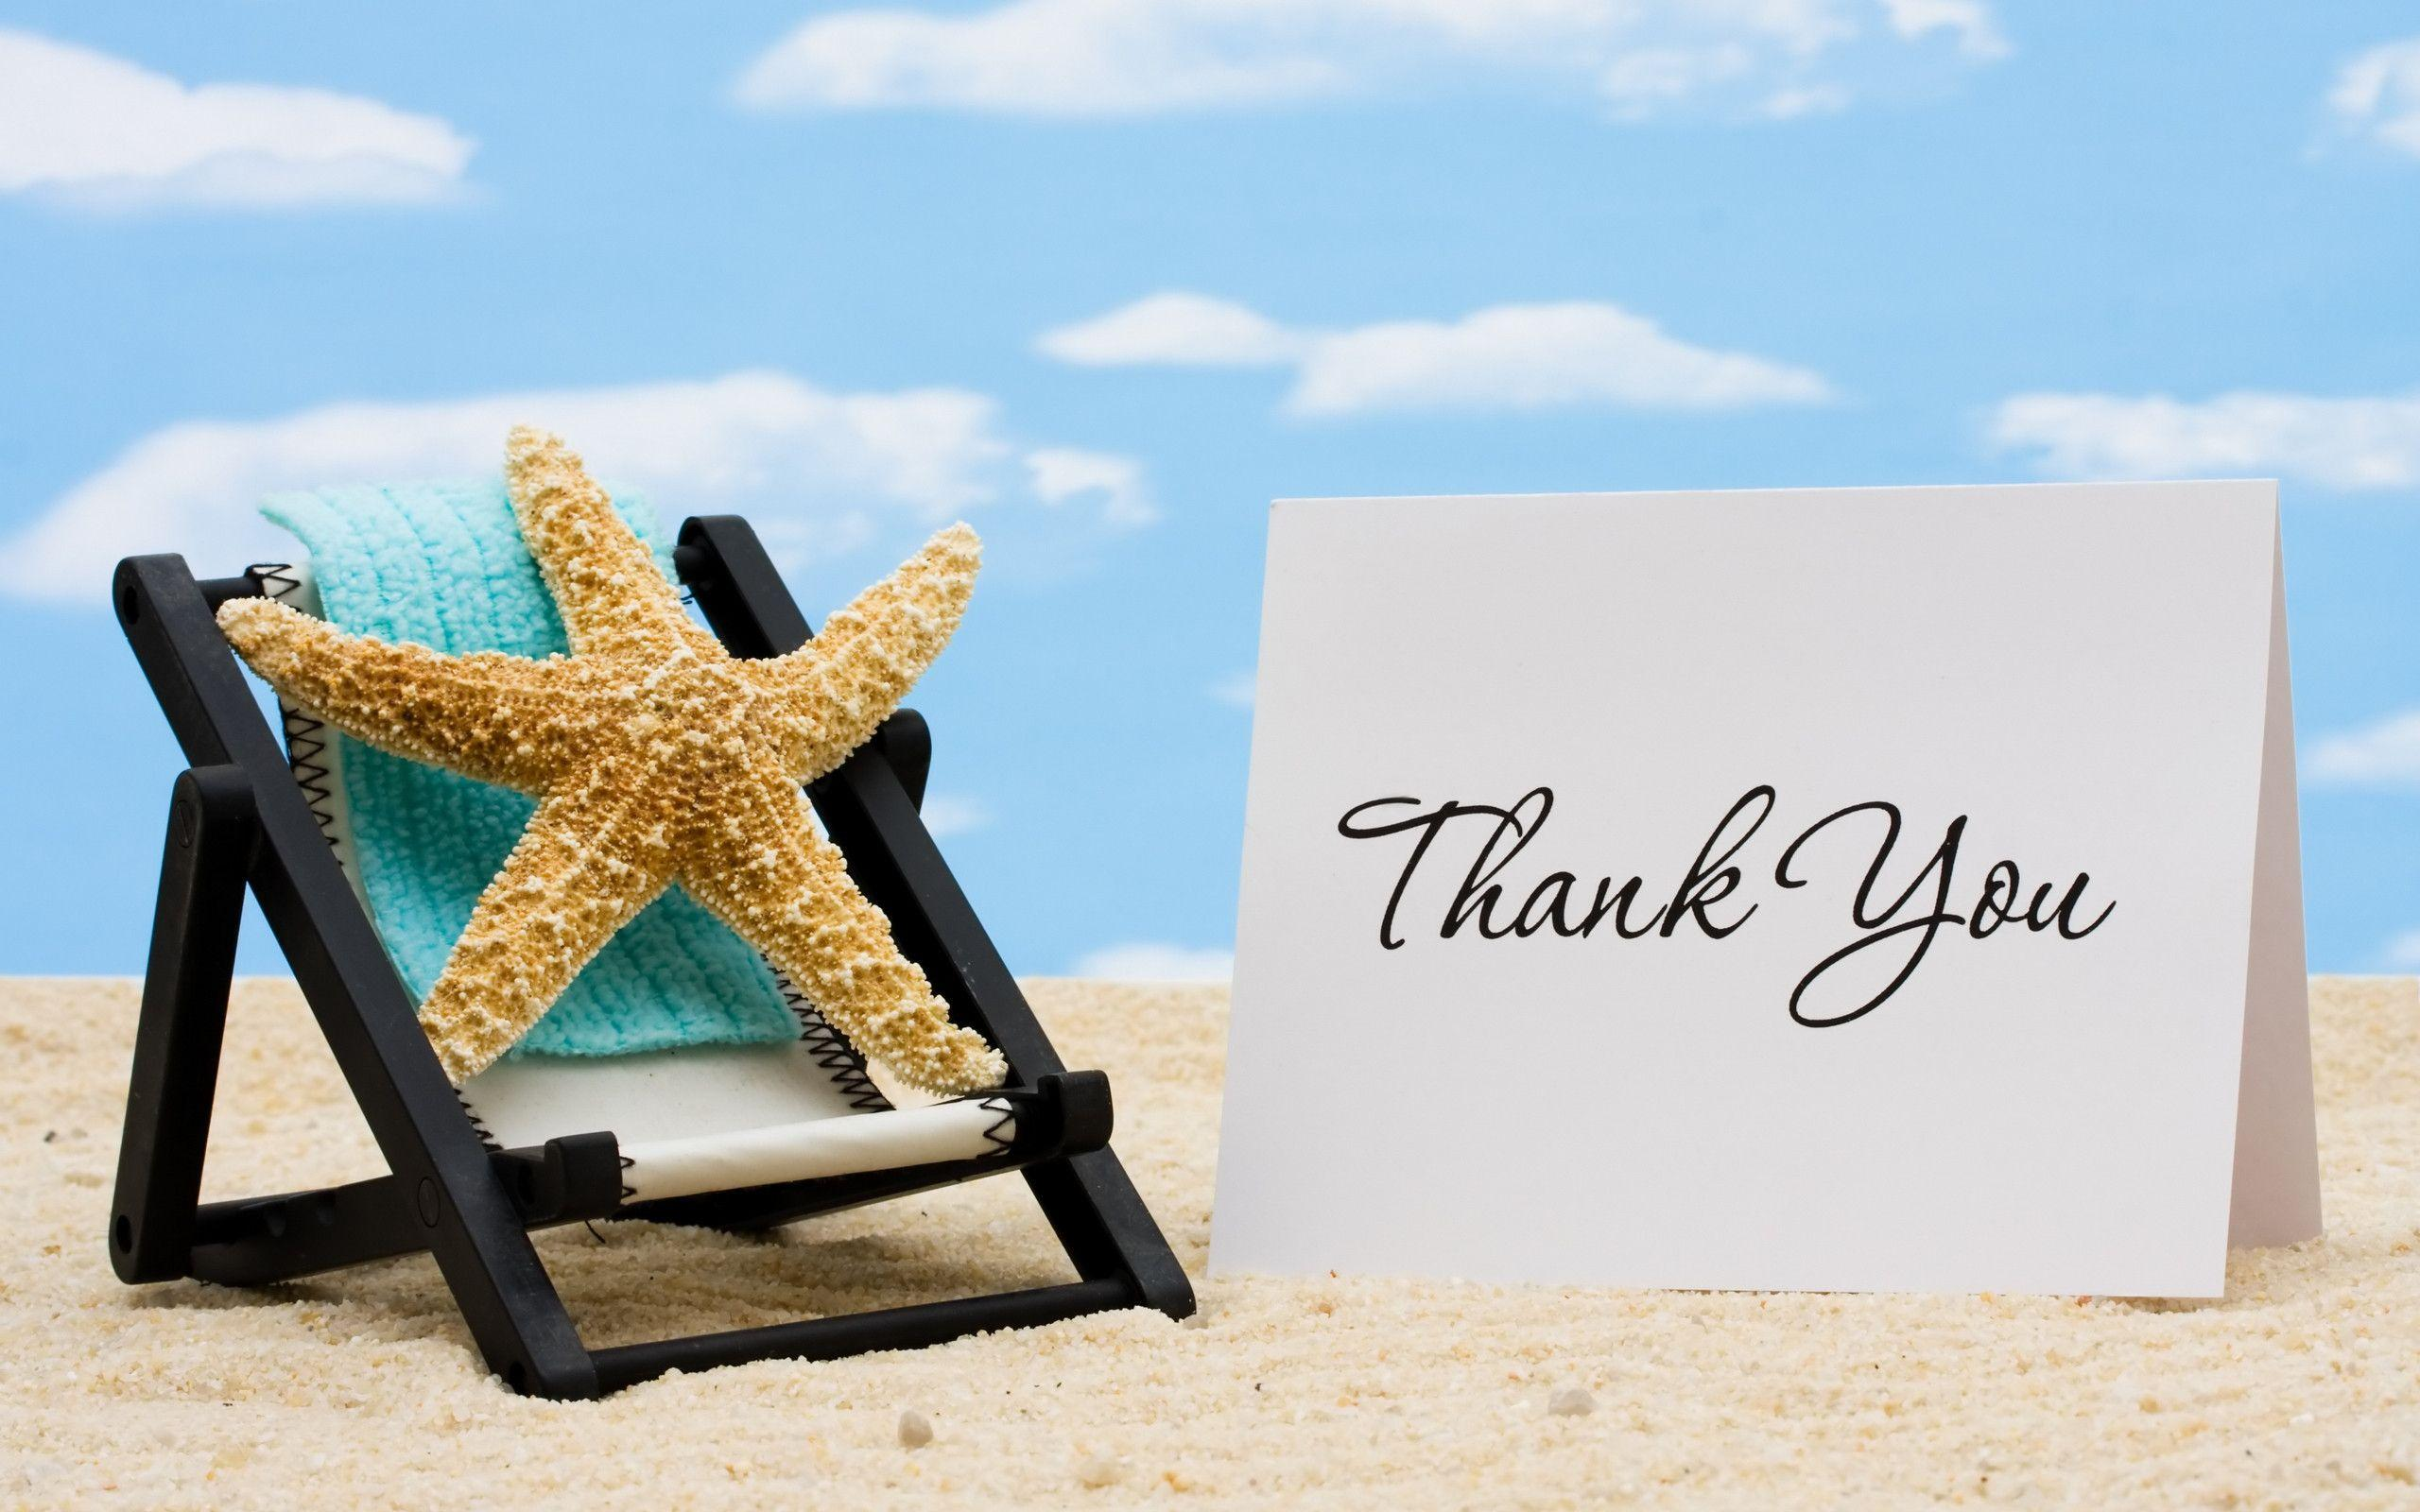 Wallpapers For > Thank You Wallpaper Hd